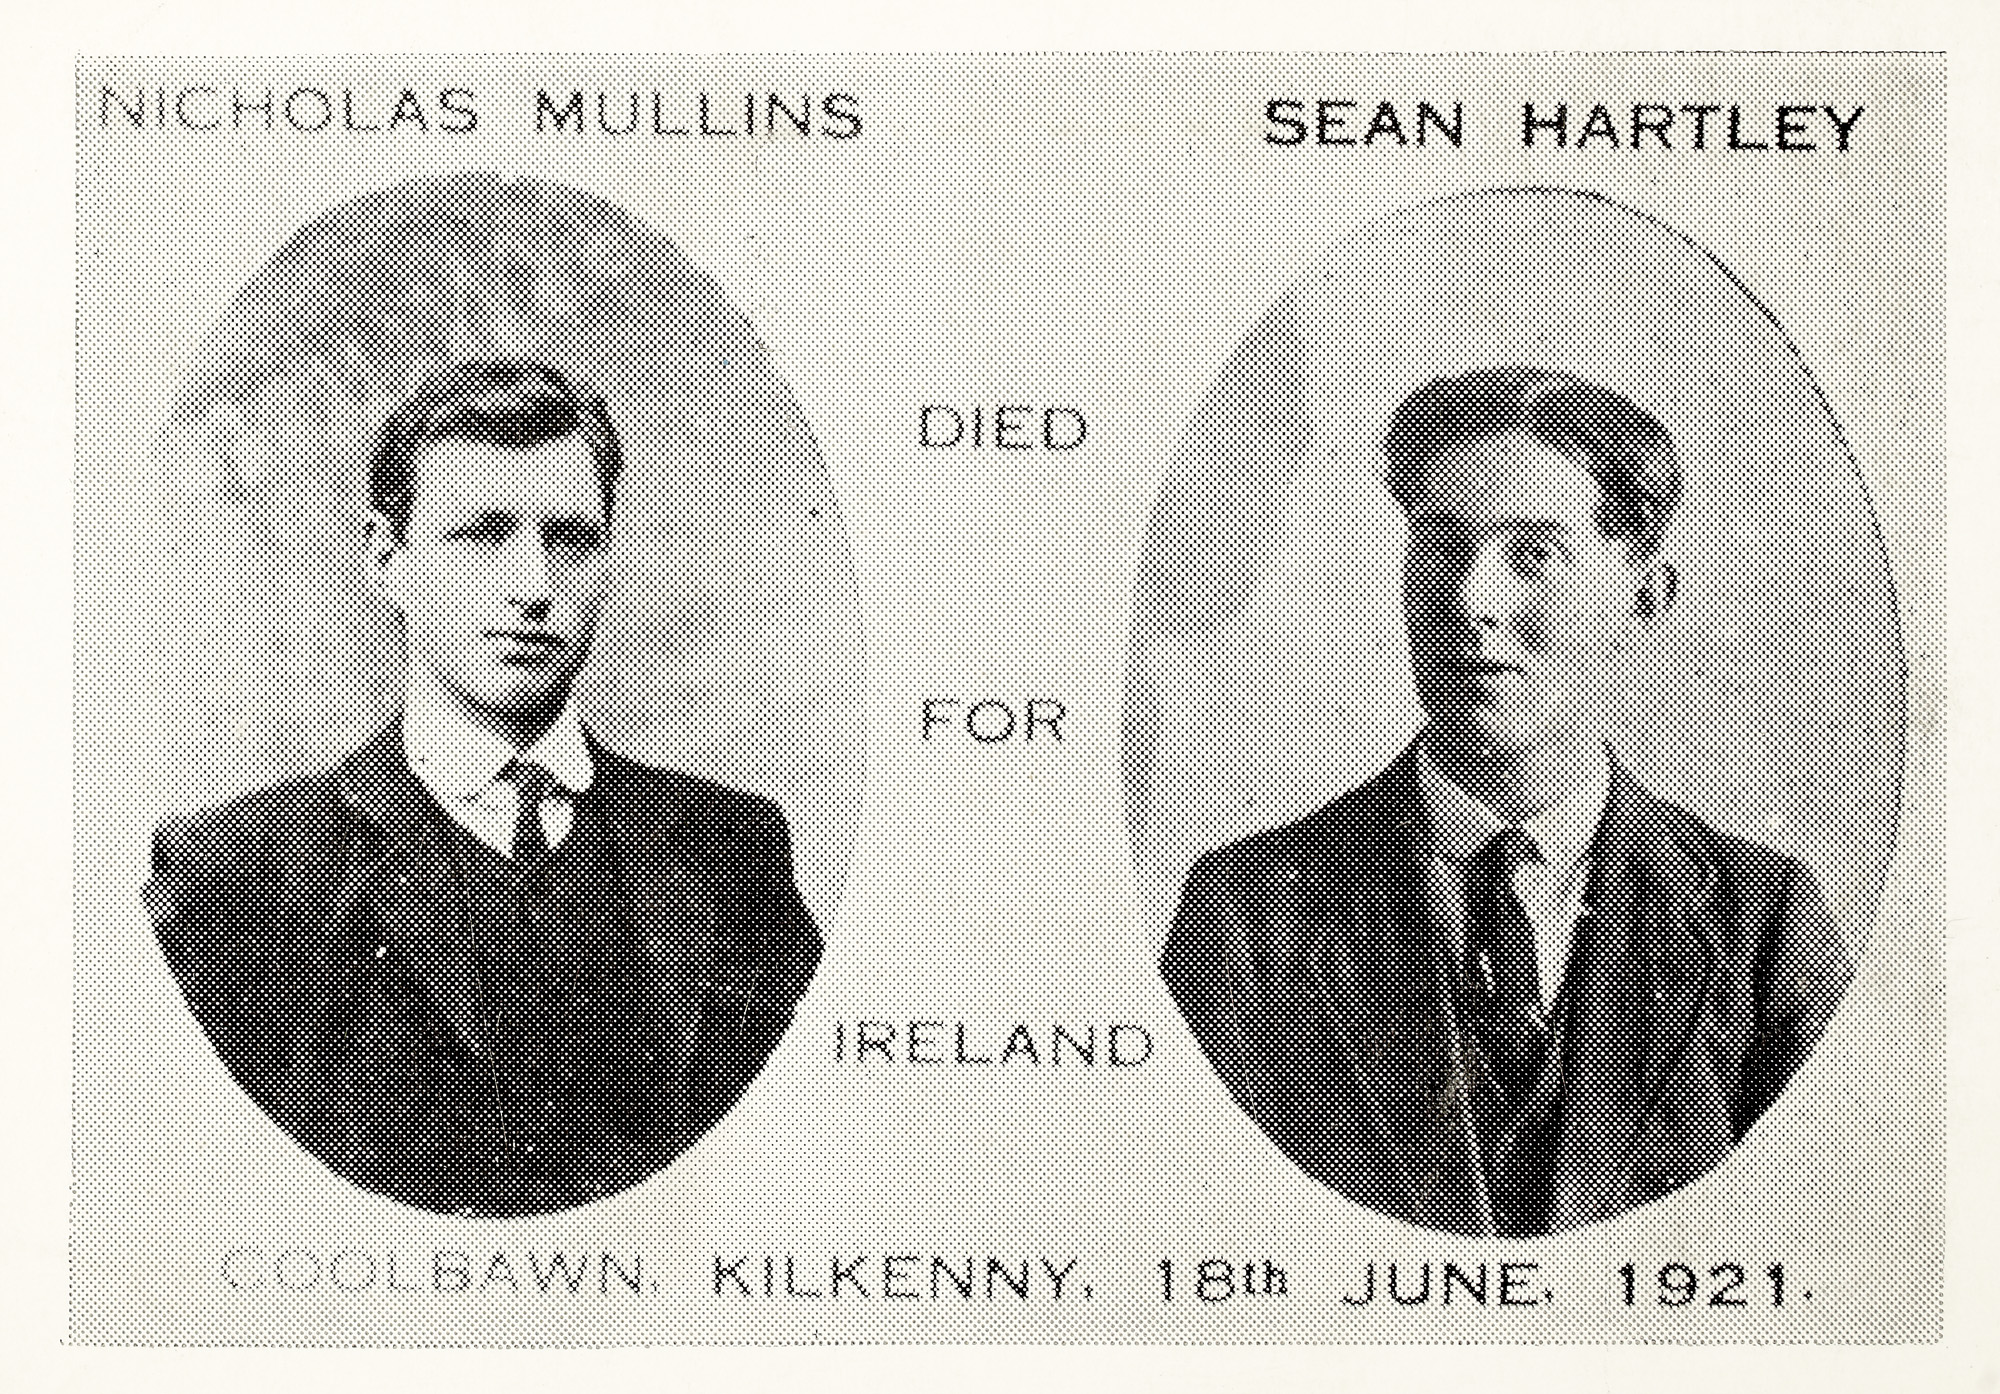 Nicholas Mullins, Sean Hartley, Died for Ireland Coolbawn, Kilkenny, 18th June 1921